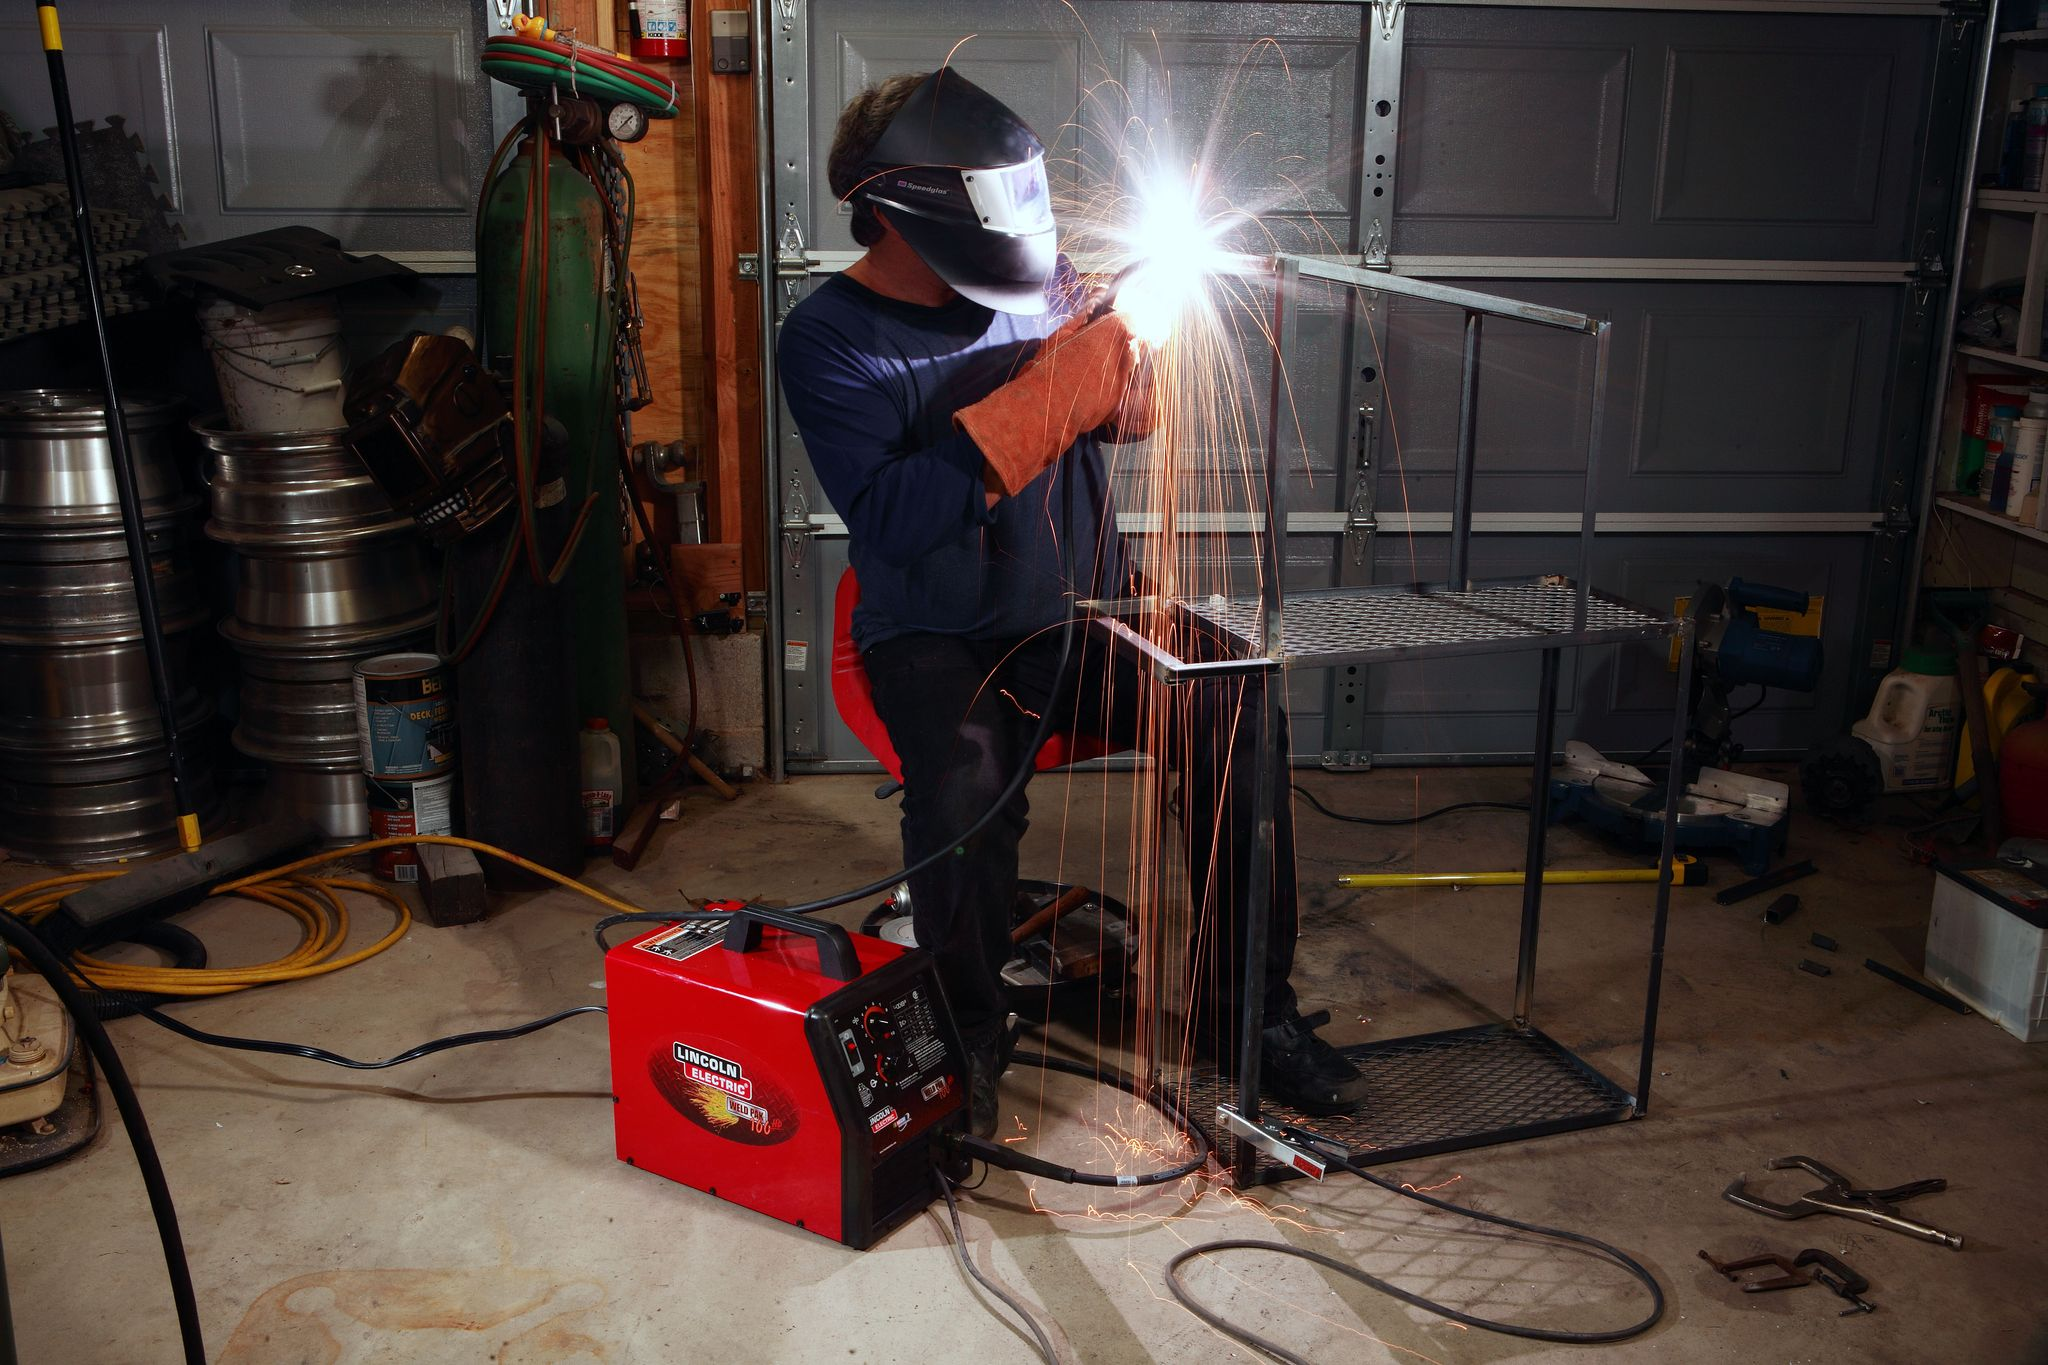 Building This Metal Cart Will Teach You the Basics of Welding